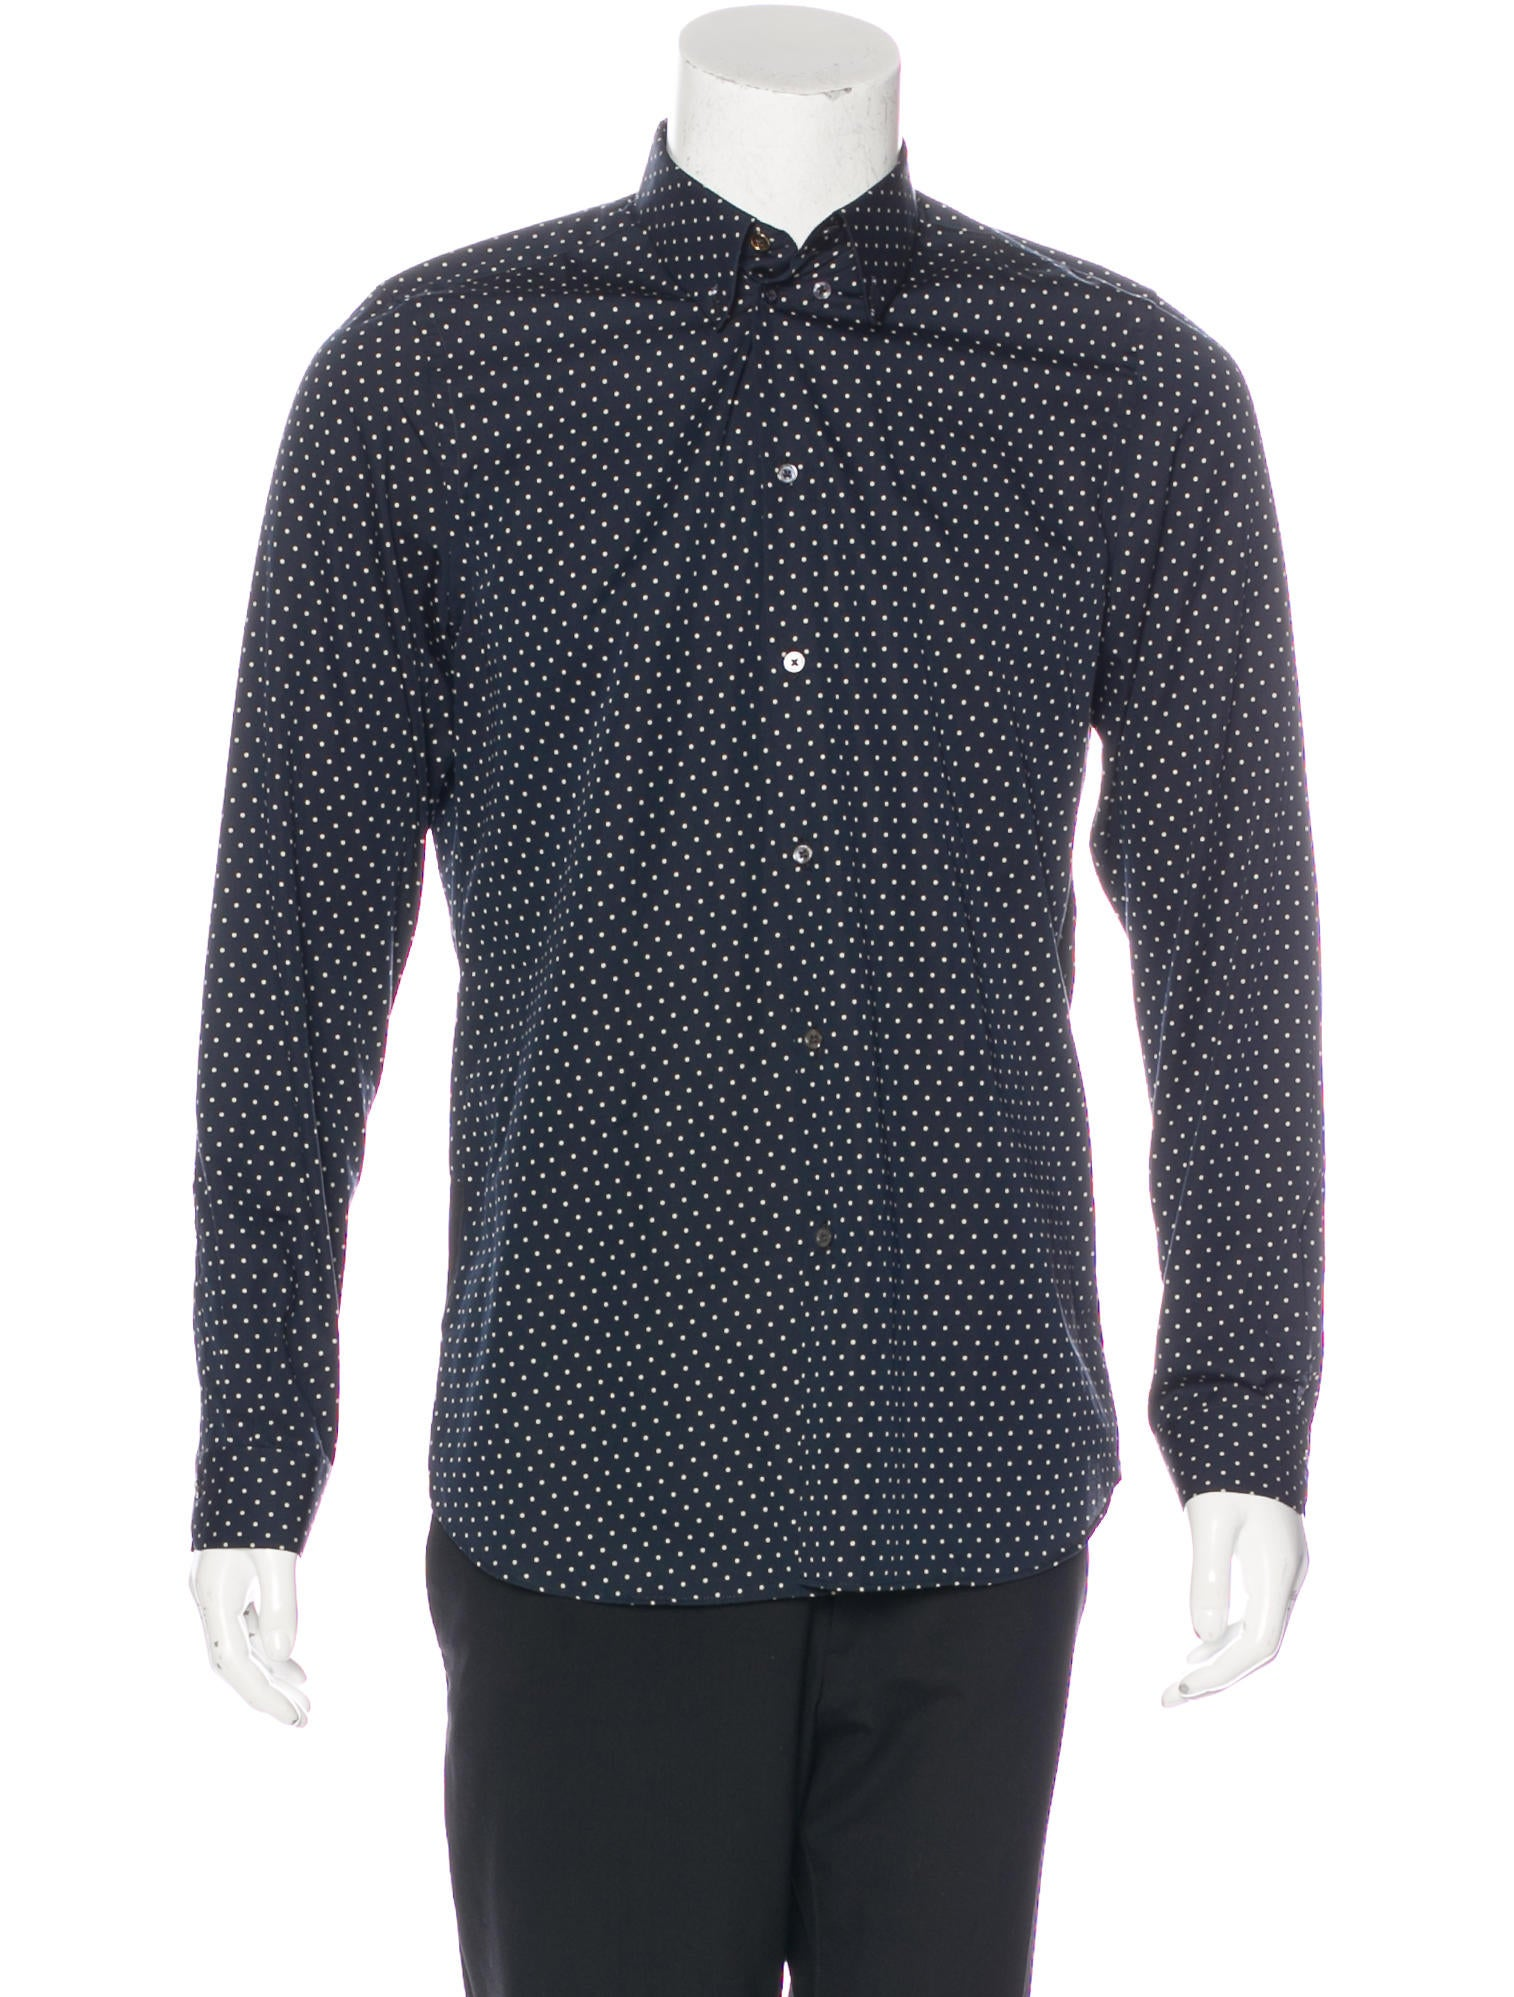 Paul Smith Polka Dot Woven Shirt - Clothing